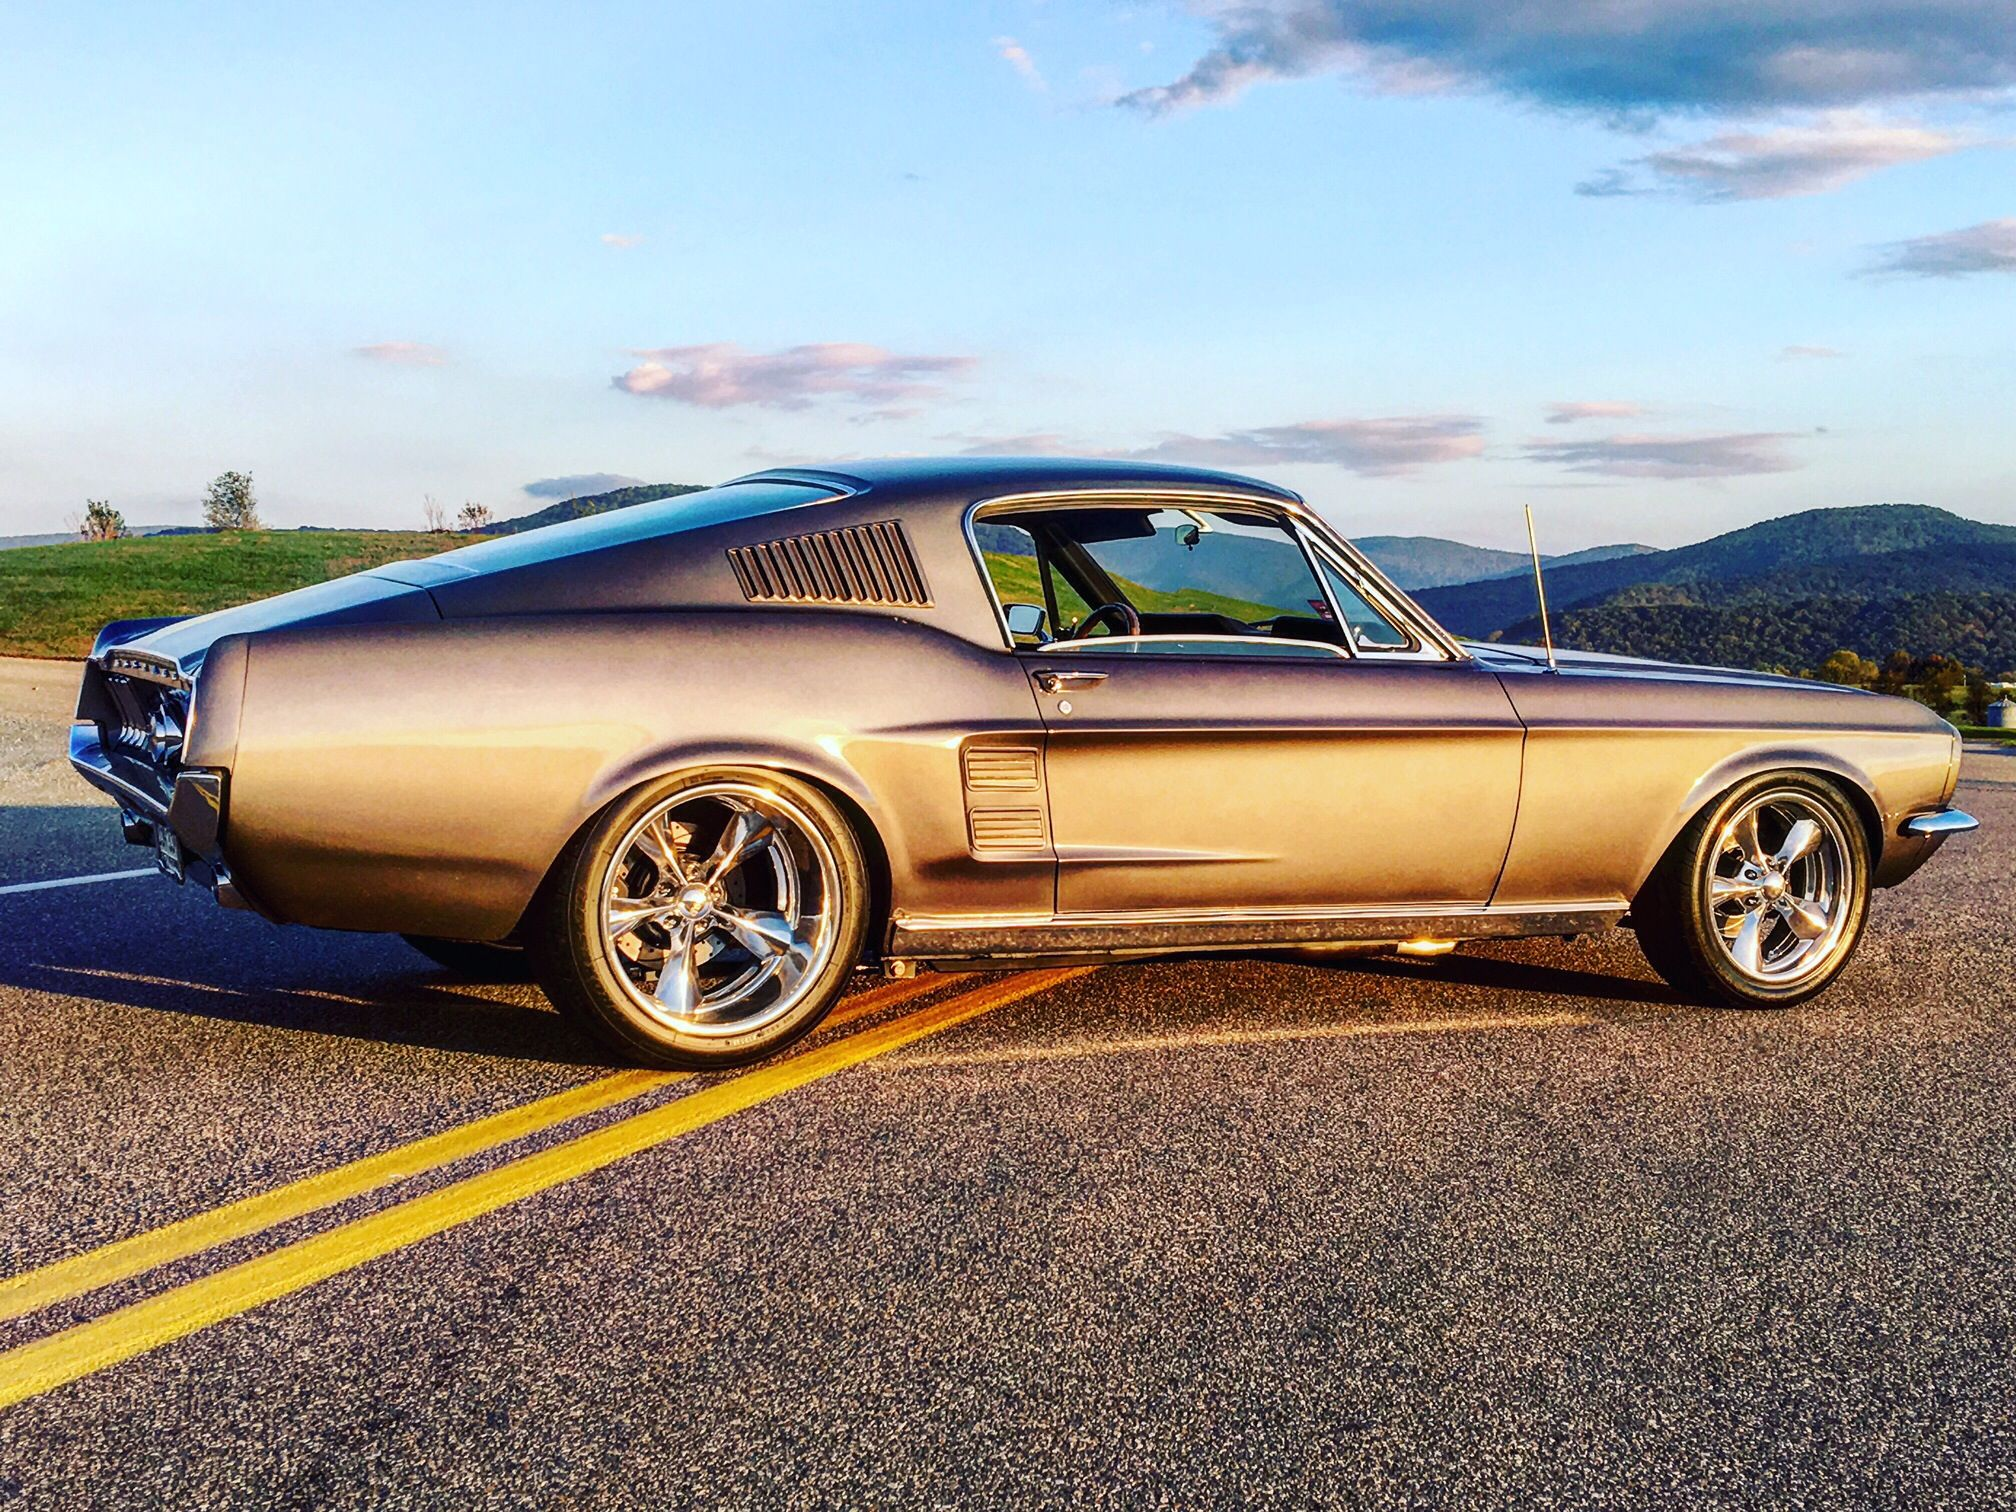 Mini Tubbed 1967 Fastback Mustang | Muscle cars | Pinterest ...